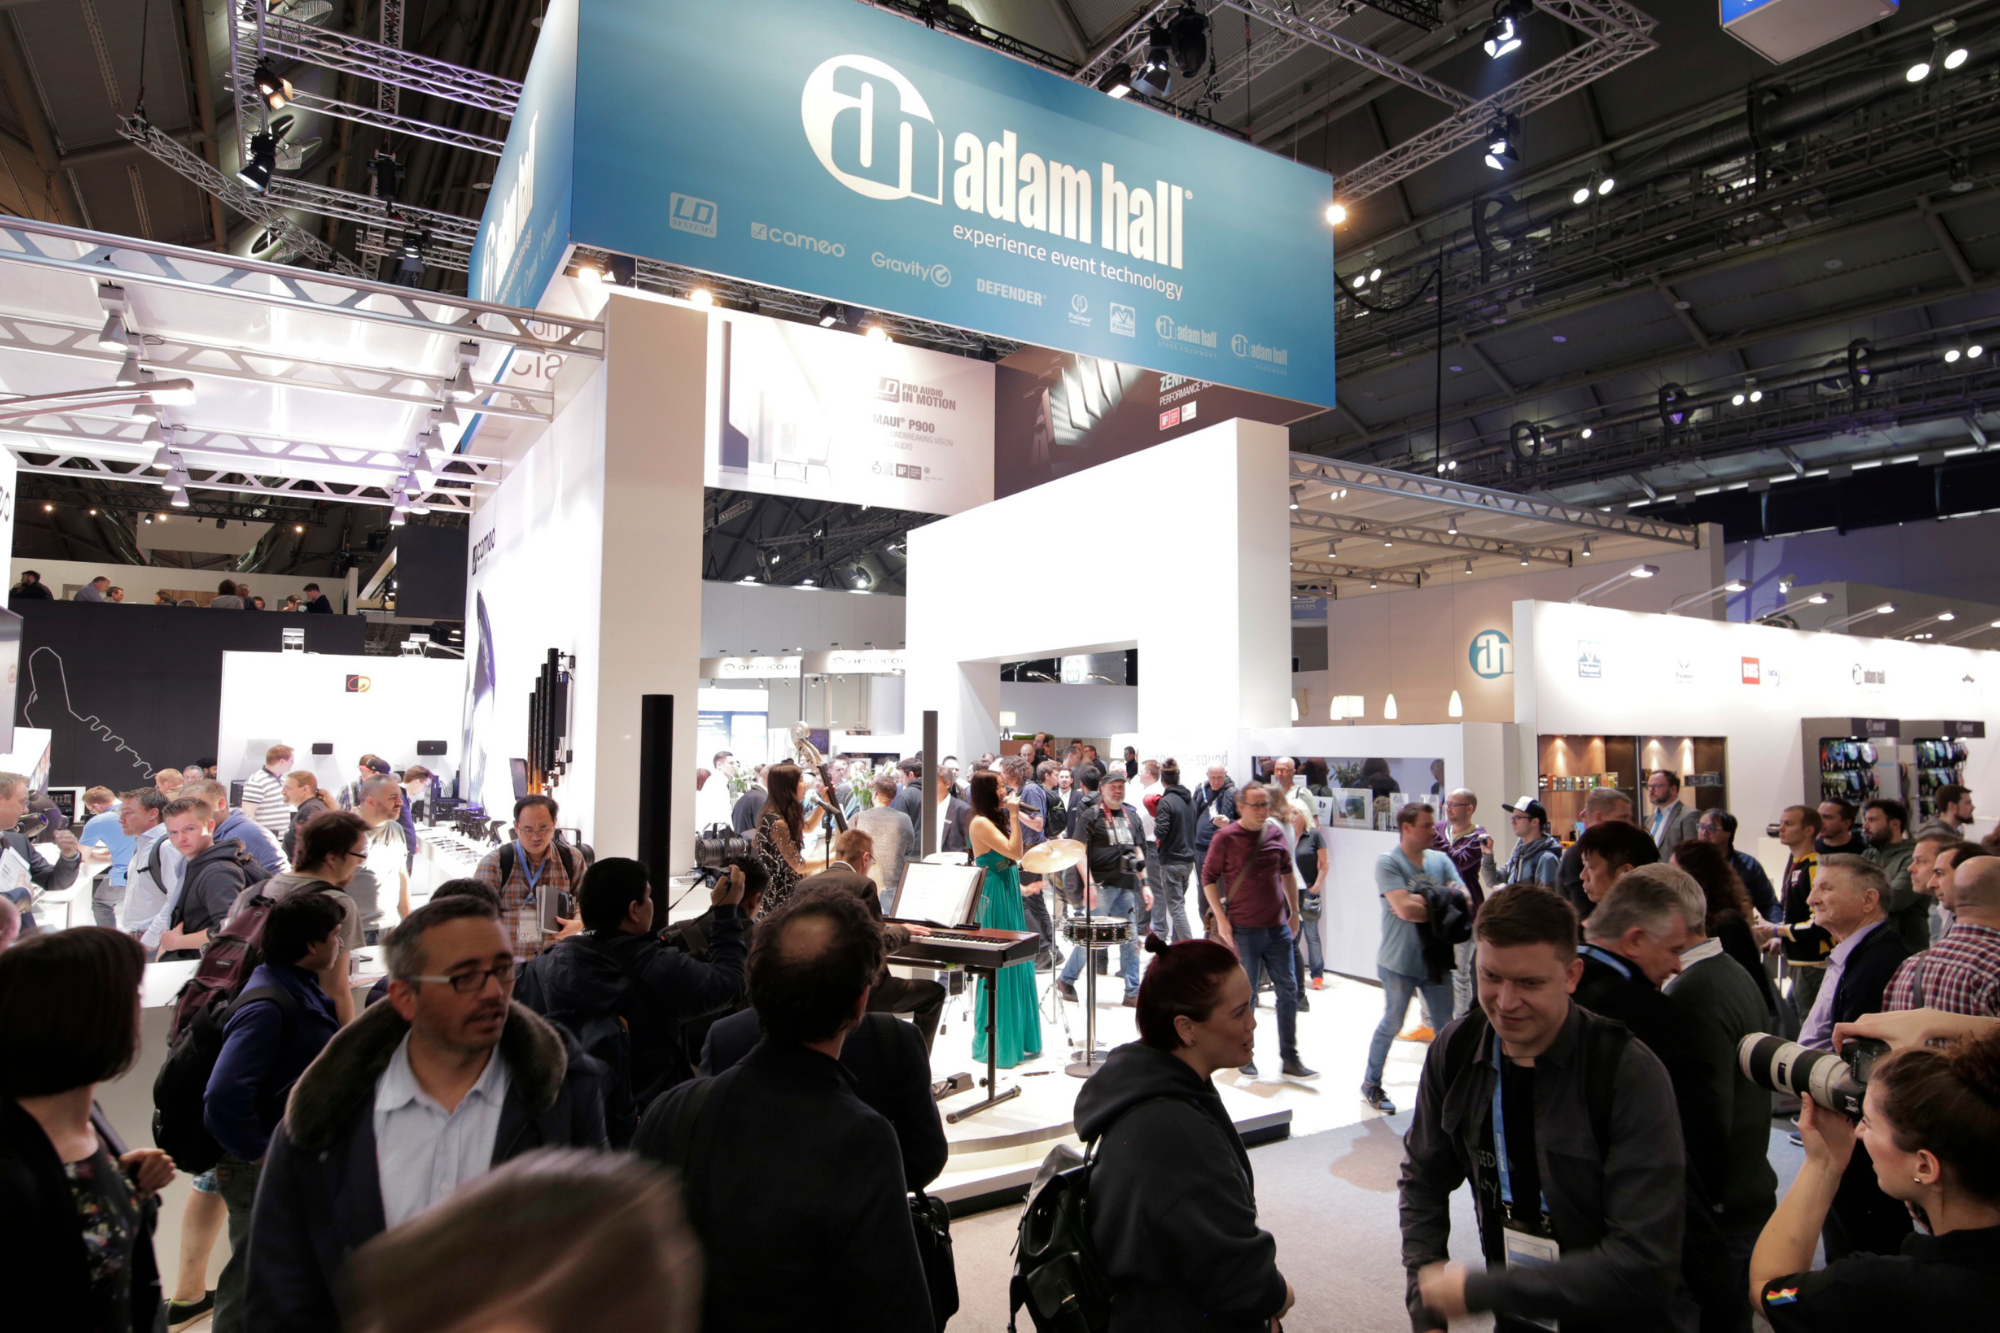 Adam Hall Group Premieres New Products and Visionary Campaigns #PLS2019